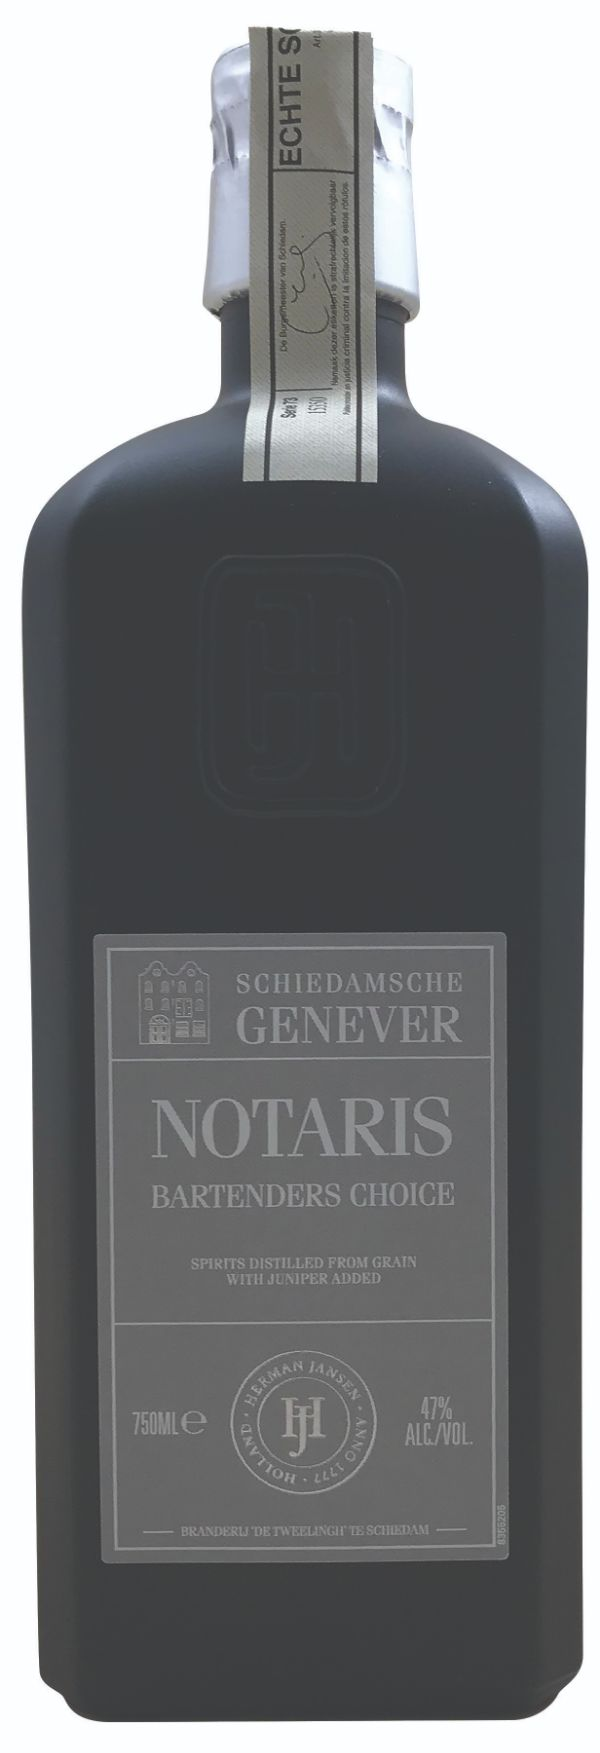 HJ Notaris Bartender's Choice Genever